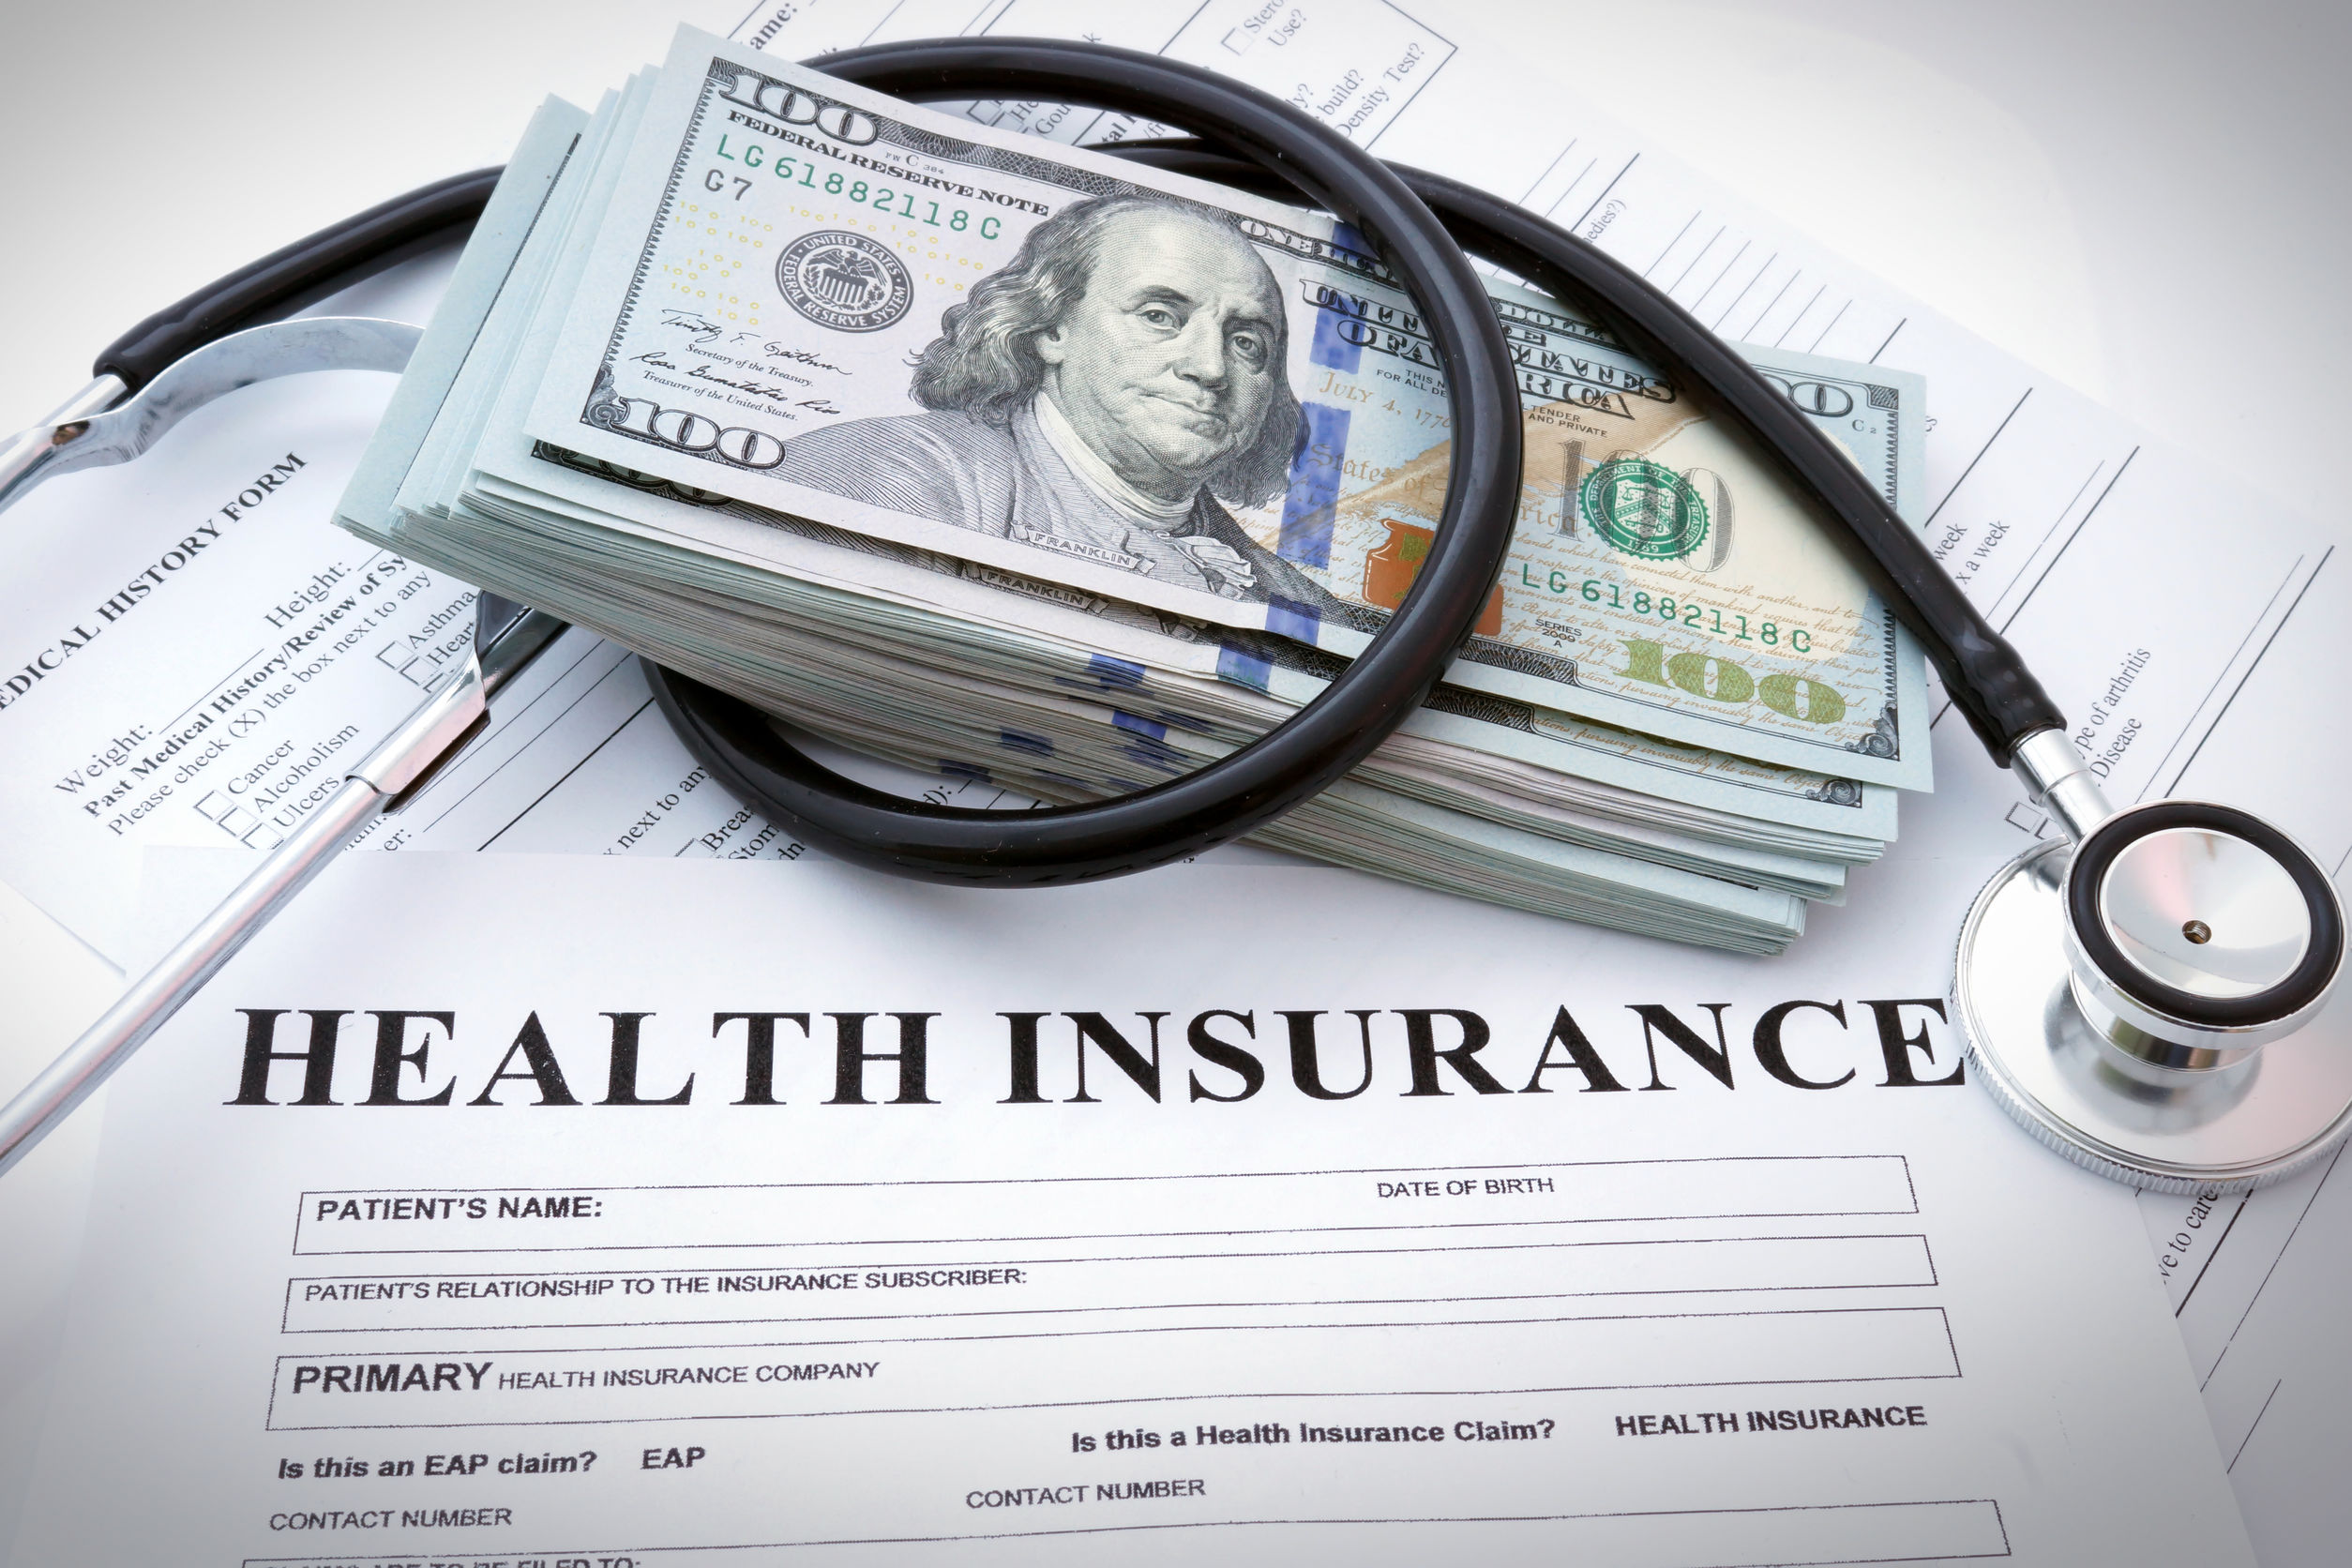 Tax money on top of insurance papers